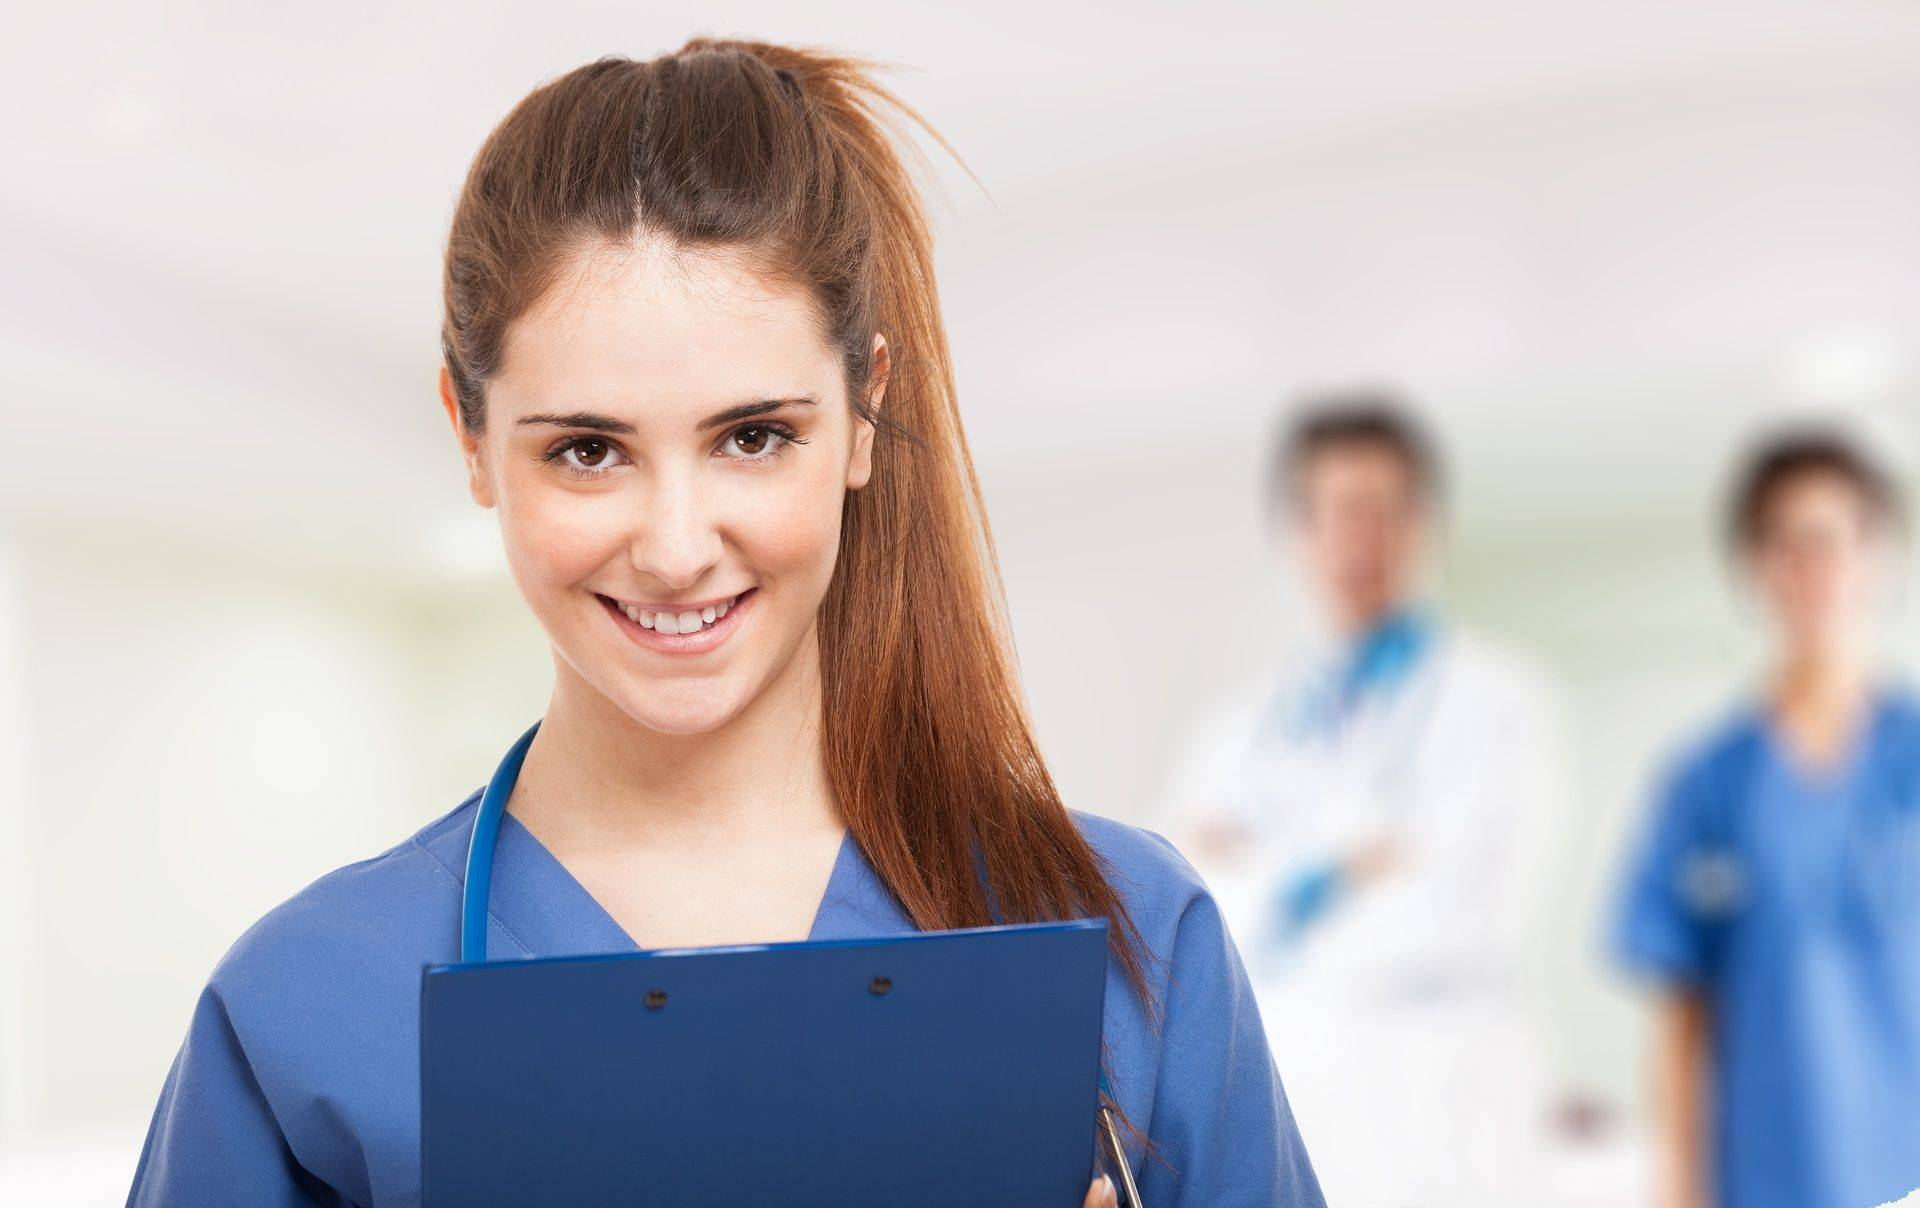 Majen now offers a Certified Nursing Assistant program!